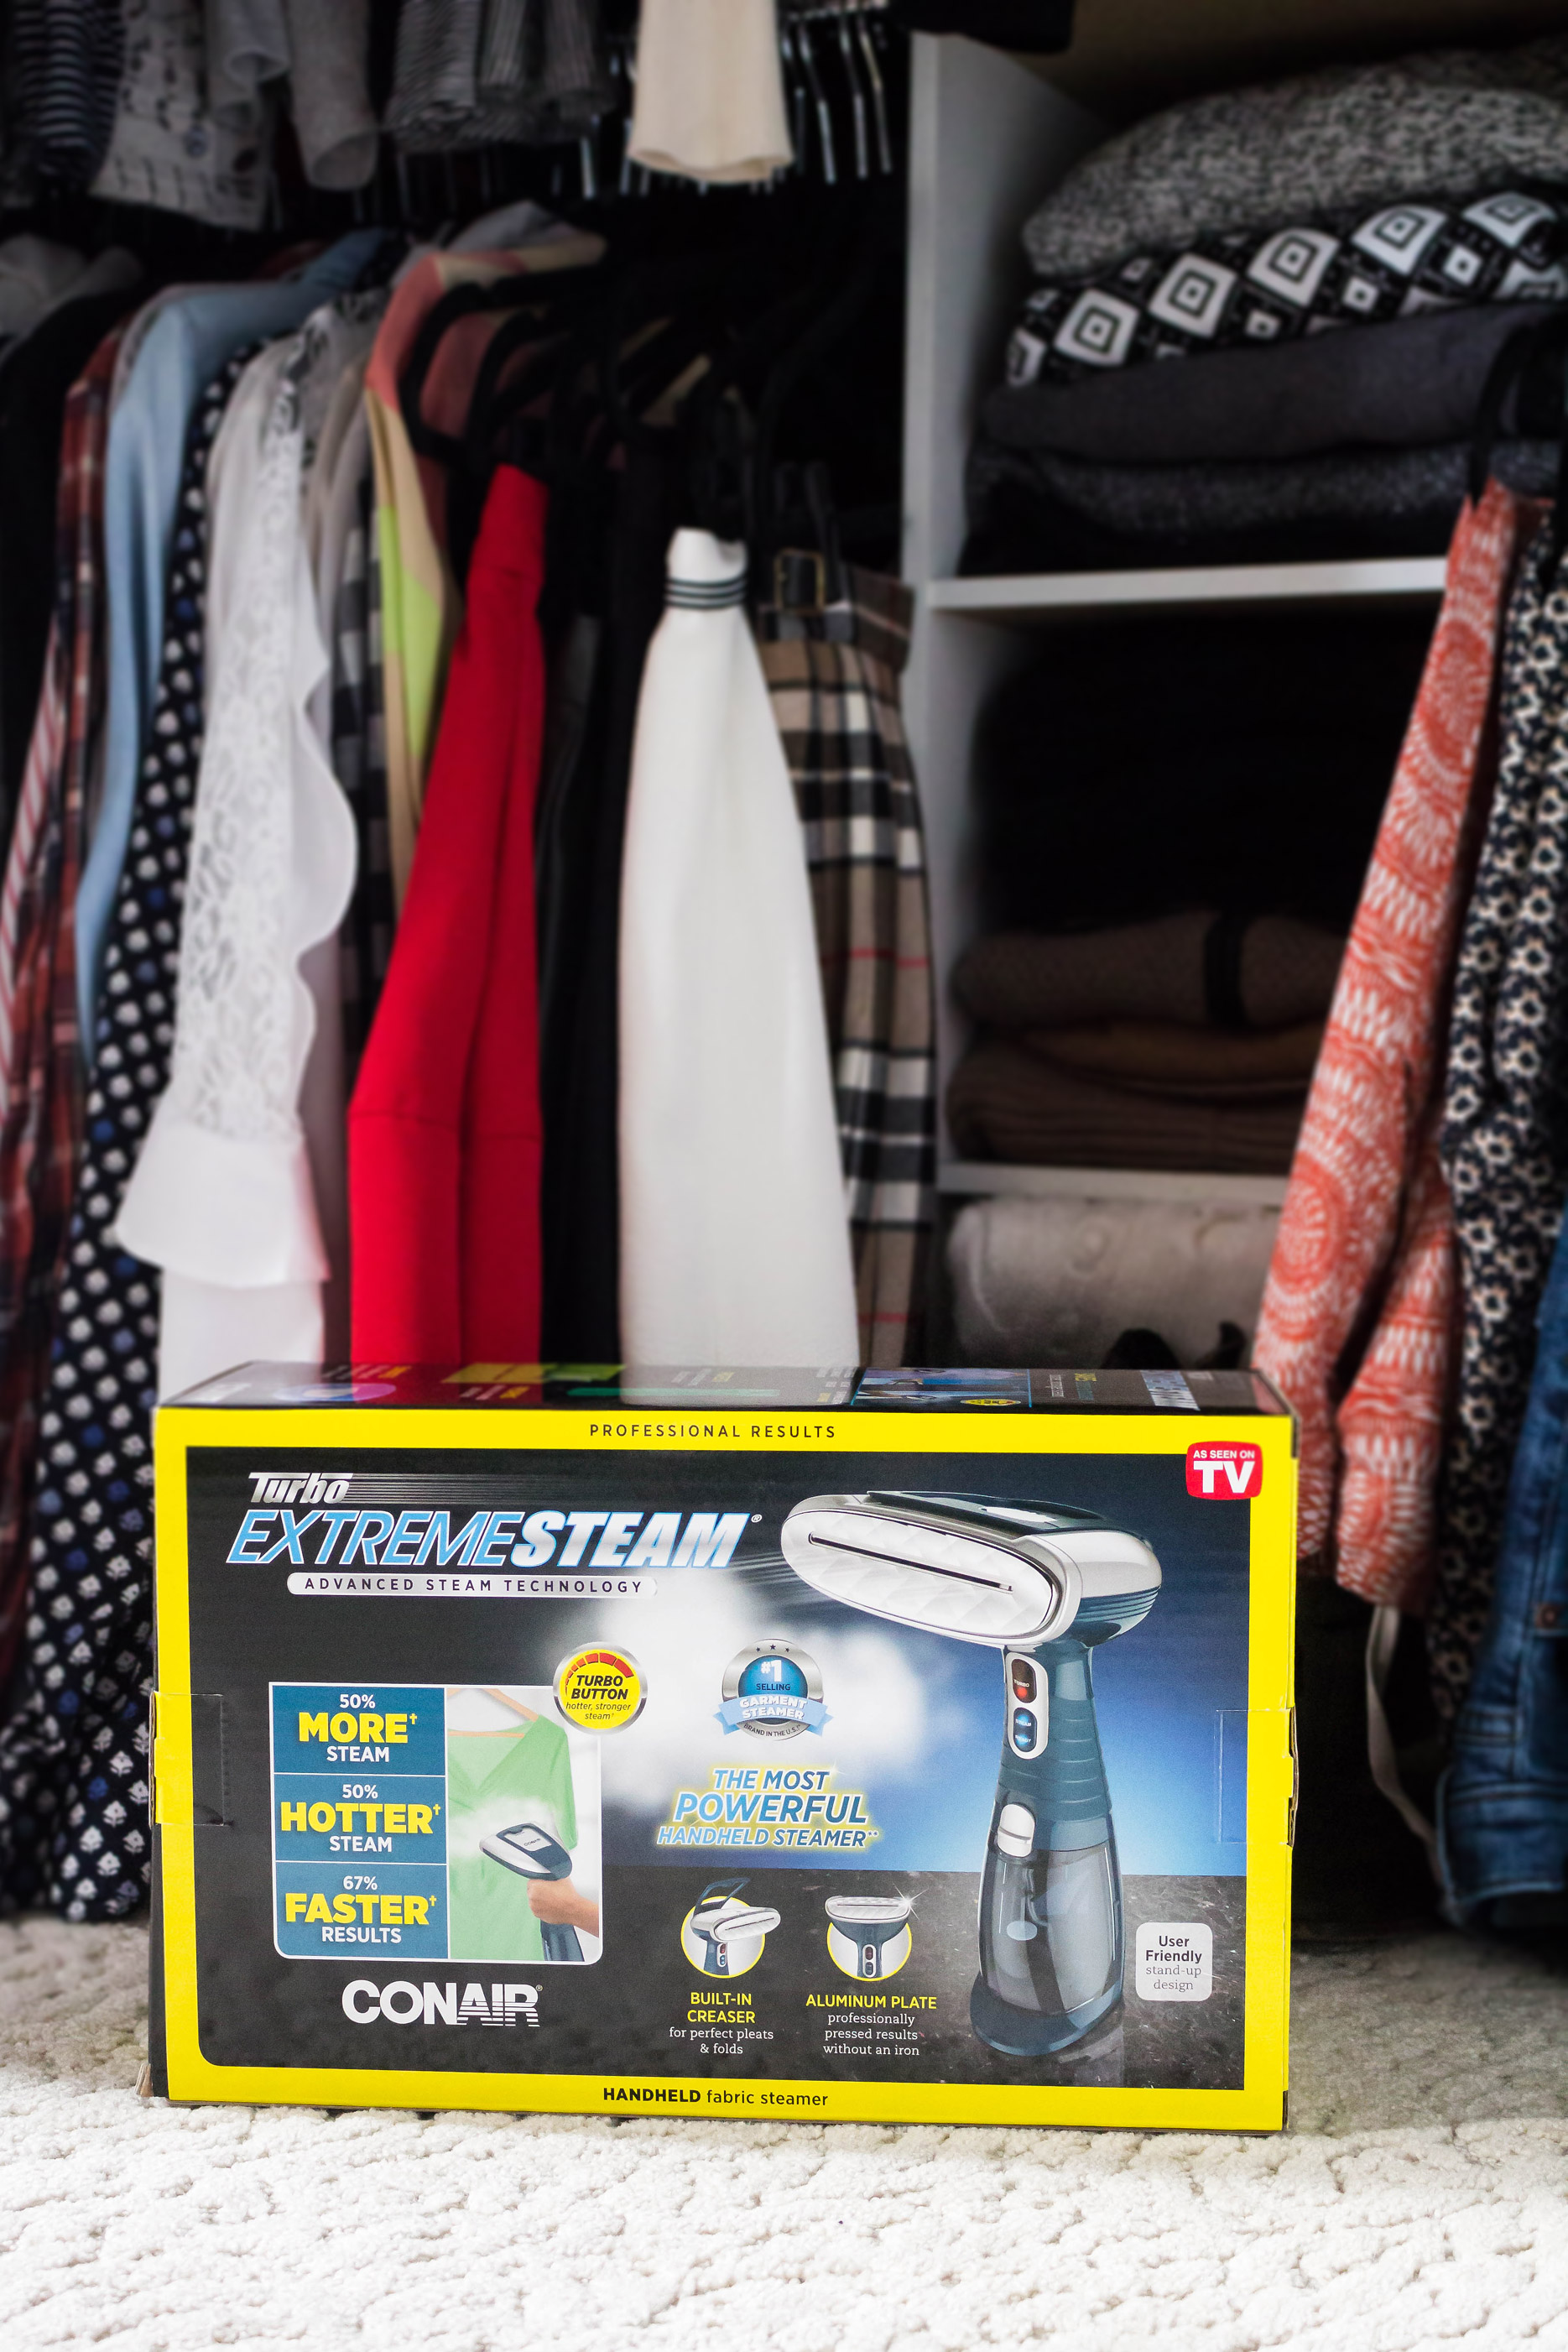 Review: Conair Turbo ExtremeSteam Handheld Fabric Steamer